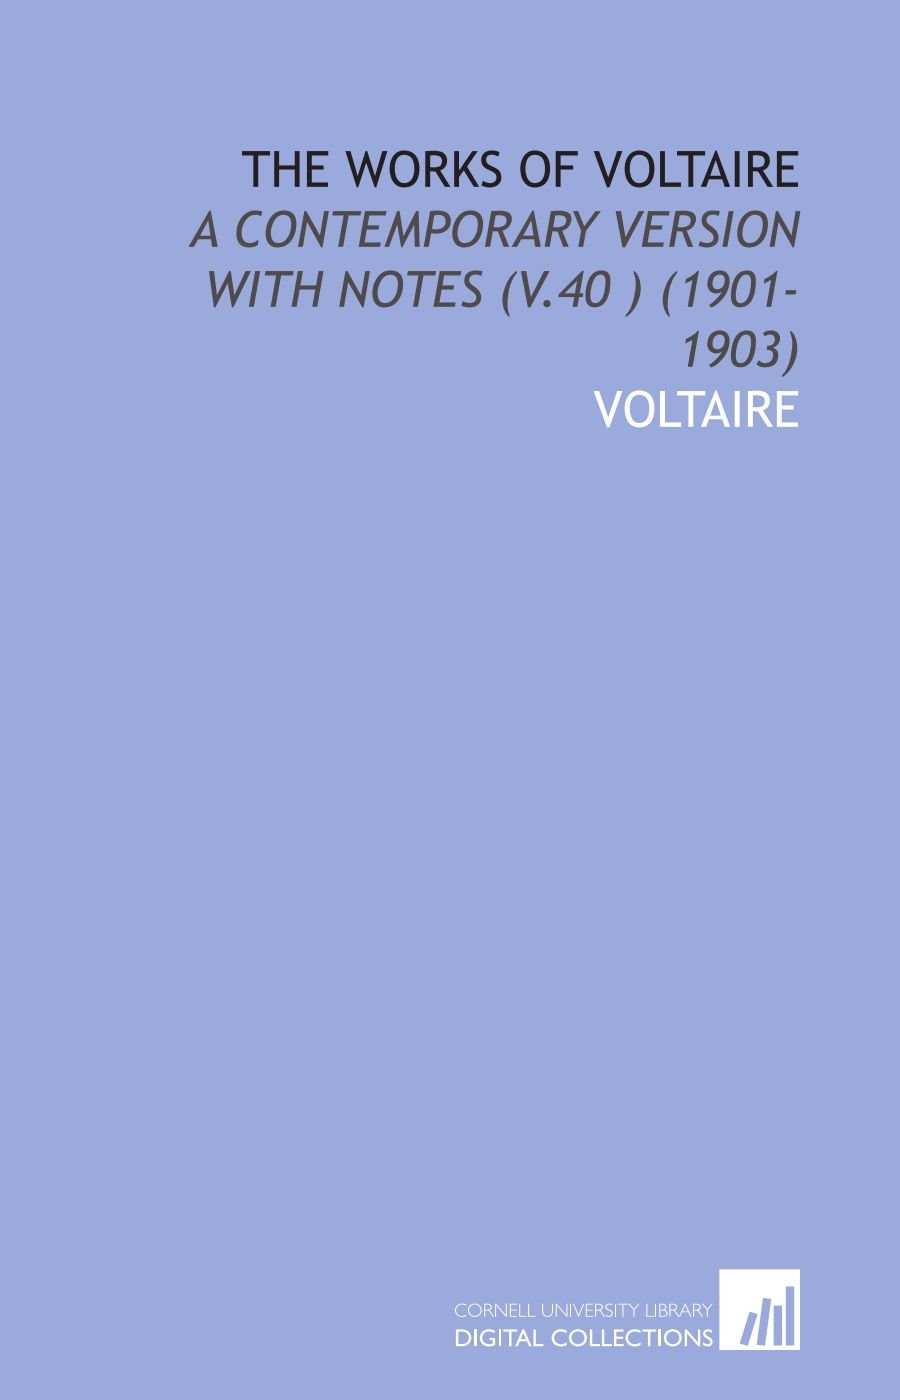 The Works of Voltaire: A Contemporary Version With Notes (V.40 ) (1901-1903) Text fb2 ebook